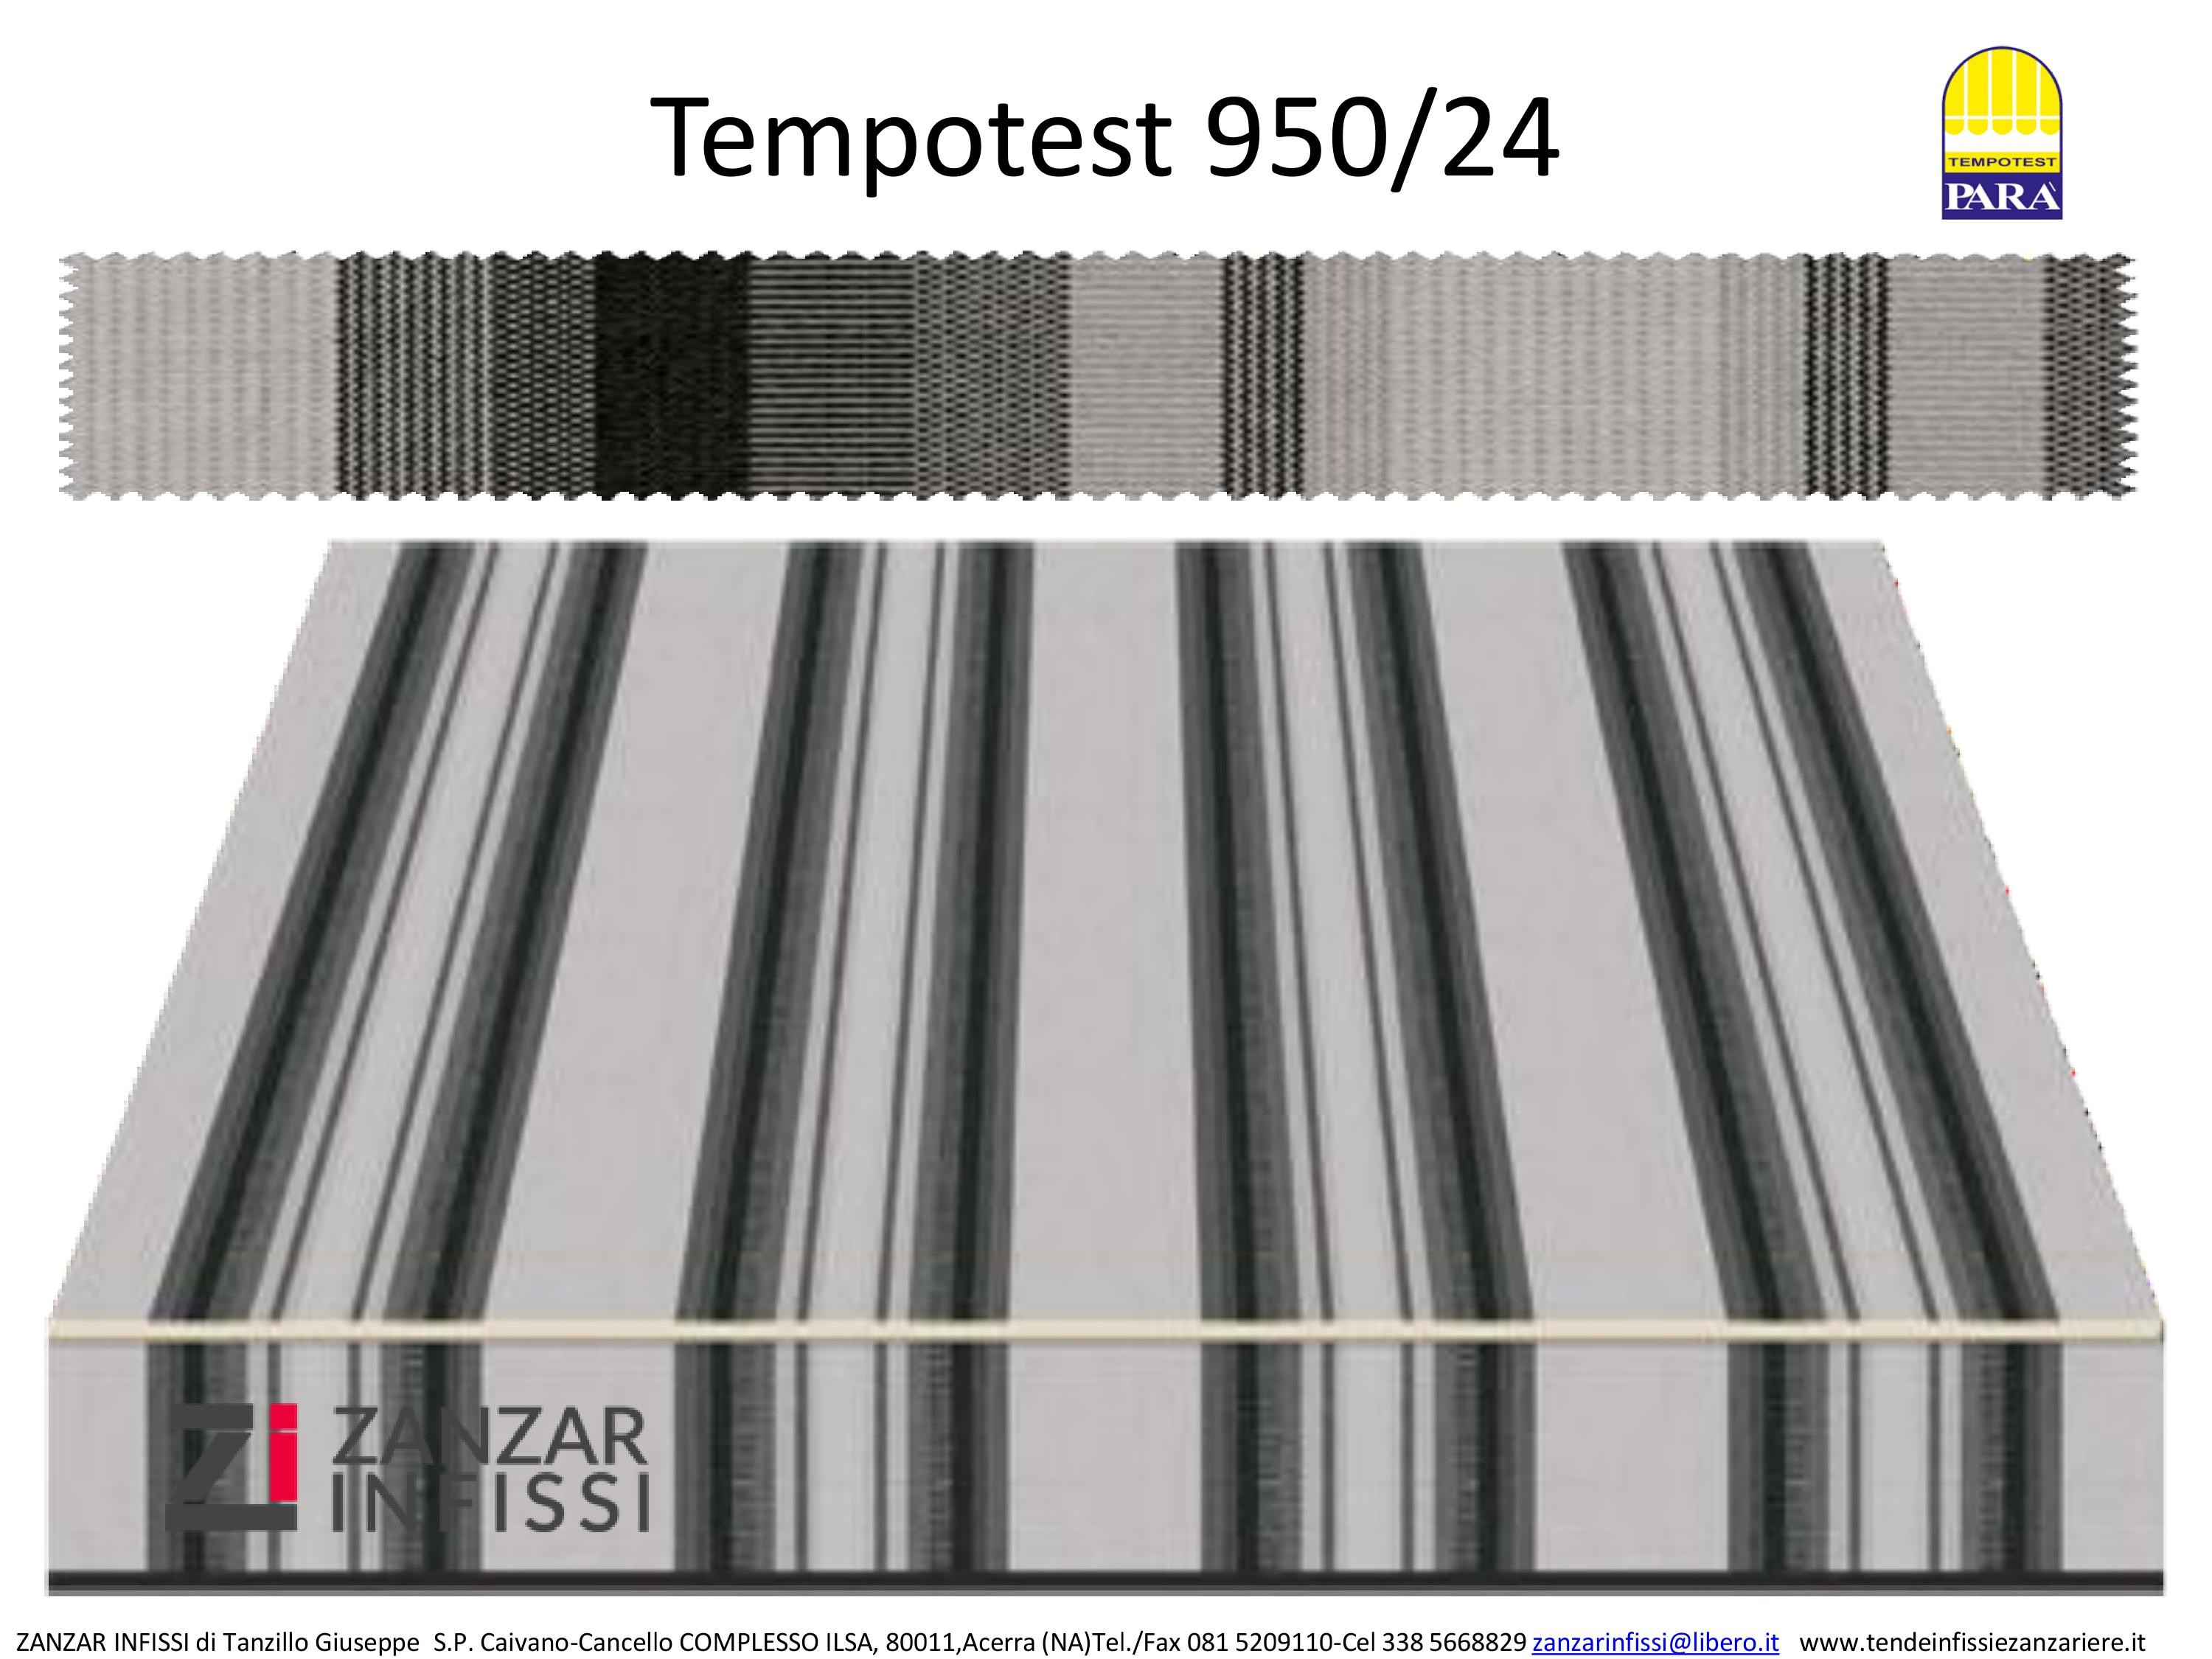 Tempotest 950/24